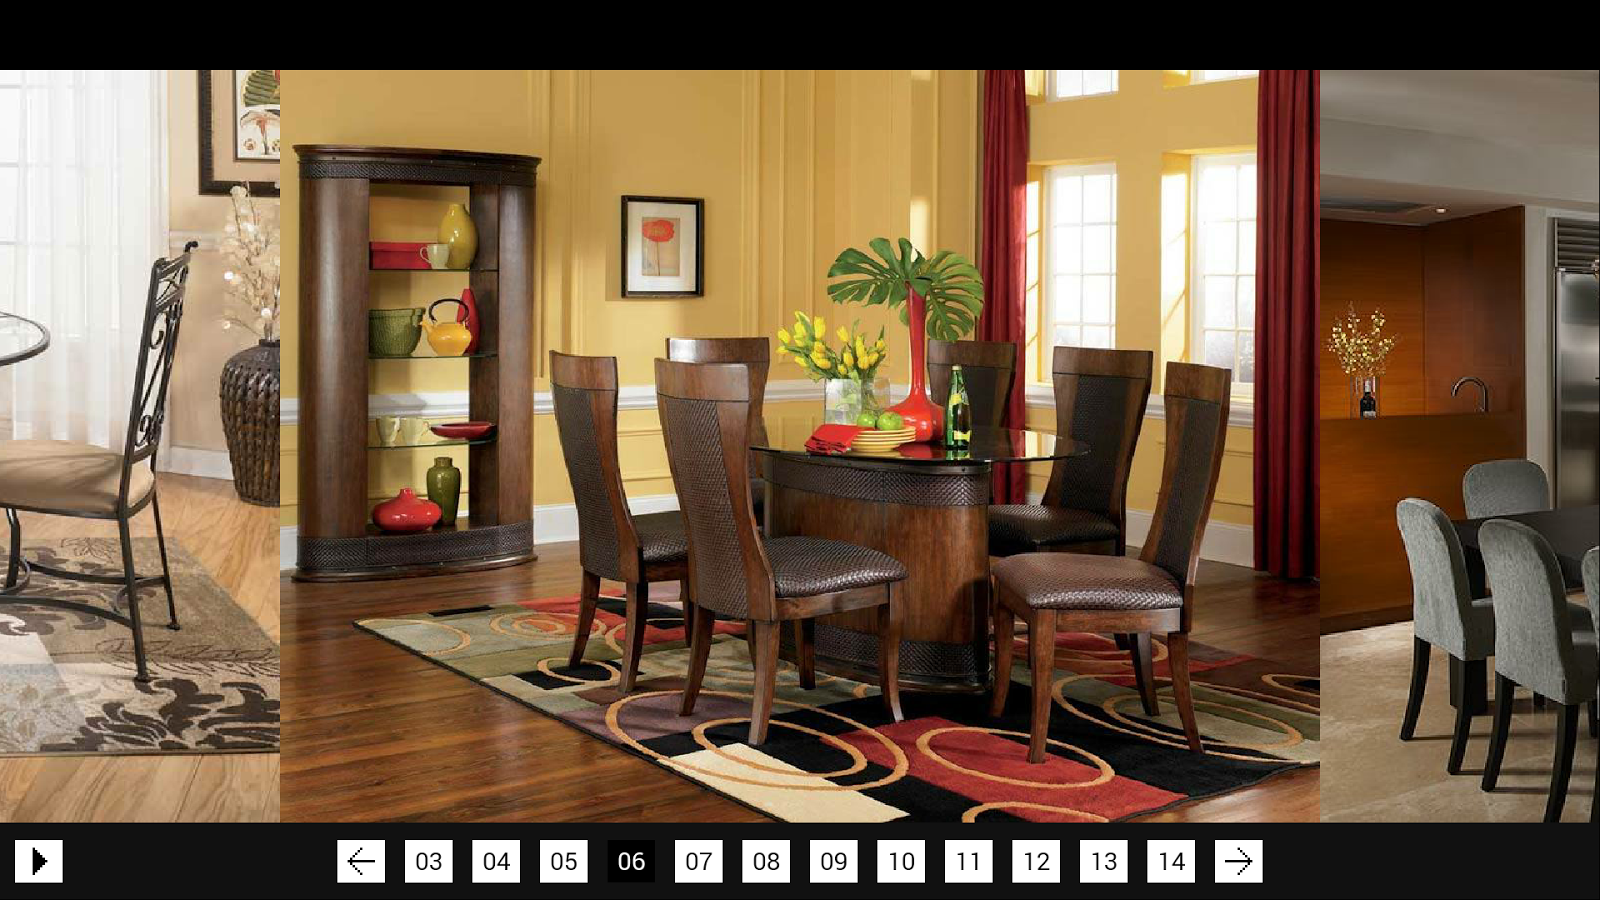 Dining room decor android apps on google play - Dining room play ...